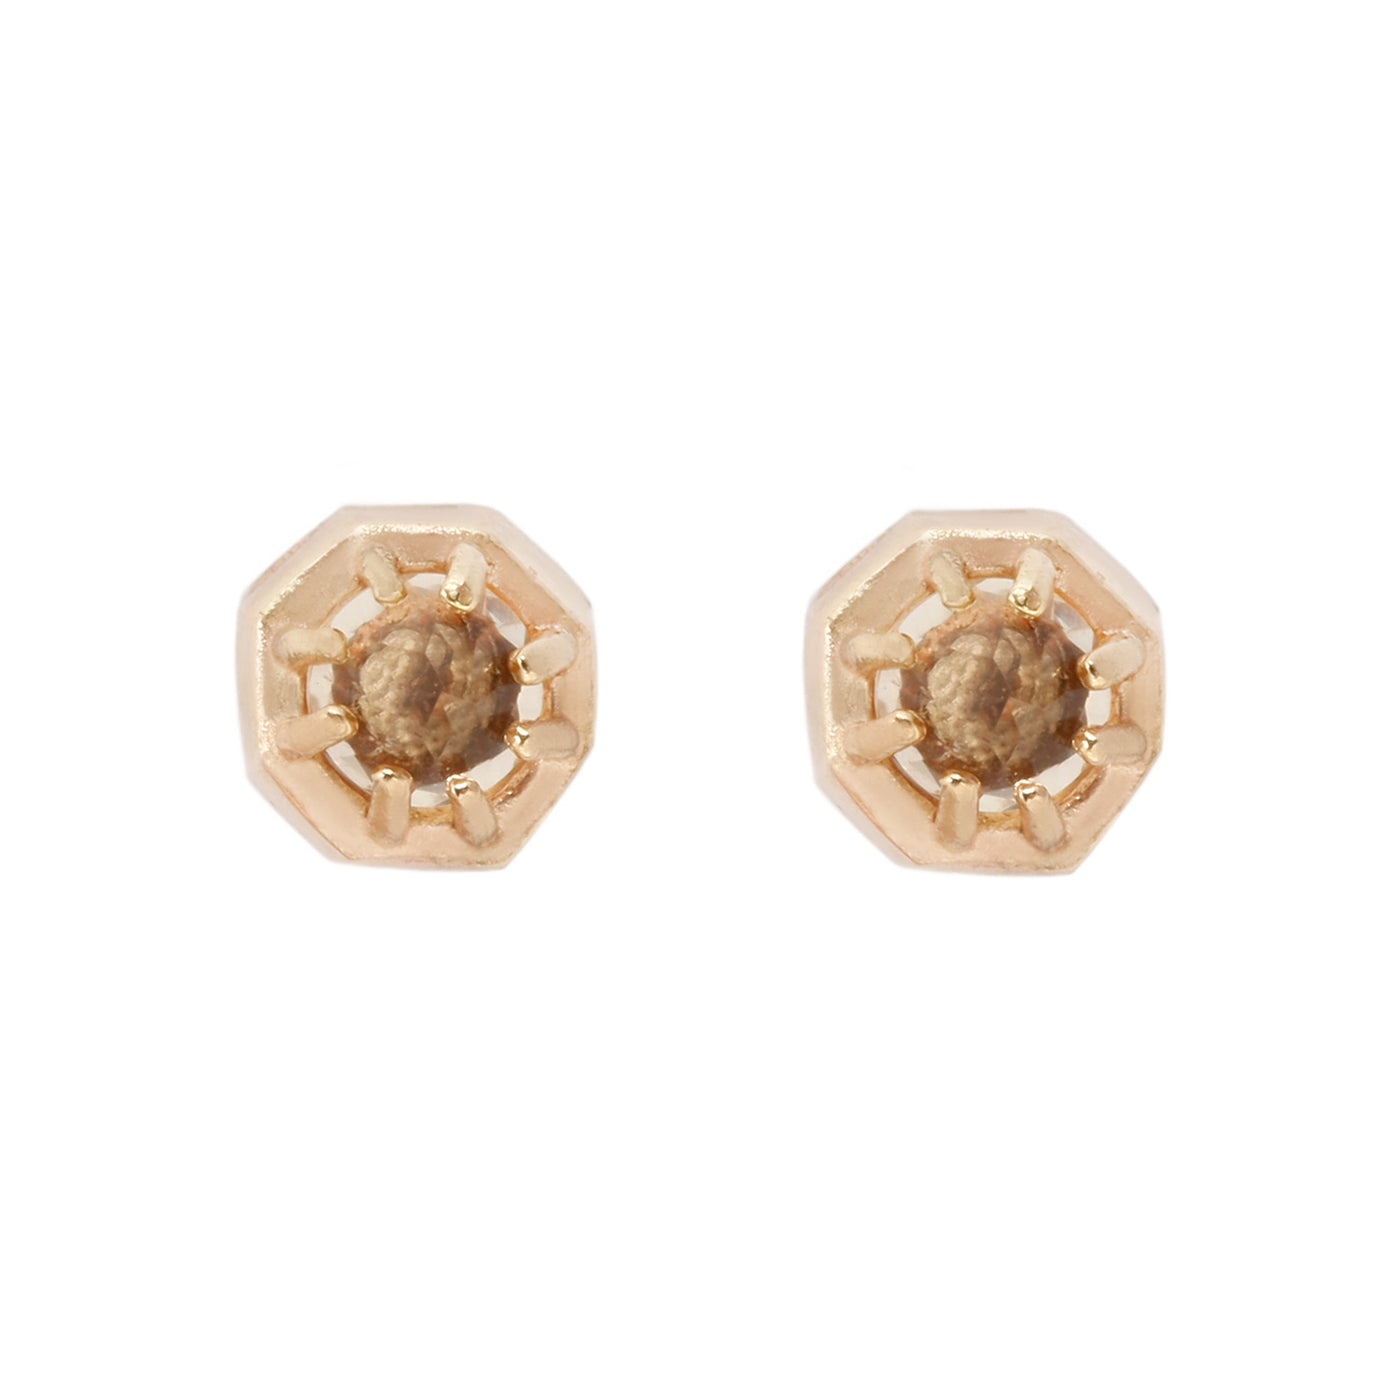 Lauren Wolf Yellow Gold Tiny Champagne Quartz Studs